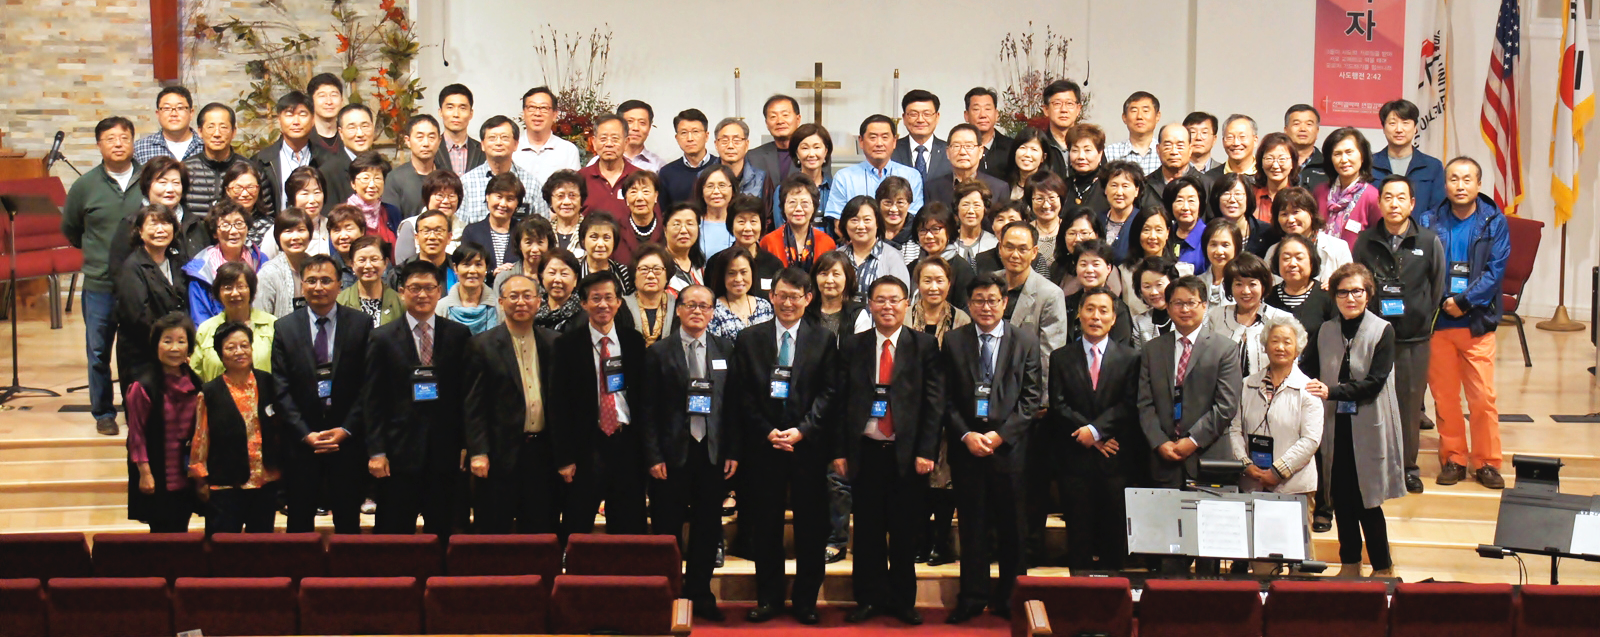 Cal-Nev Korean UMC Lay Leadership Conference